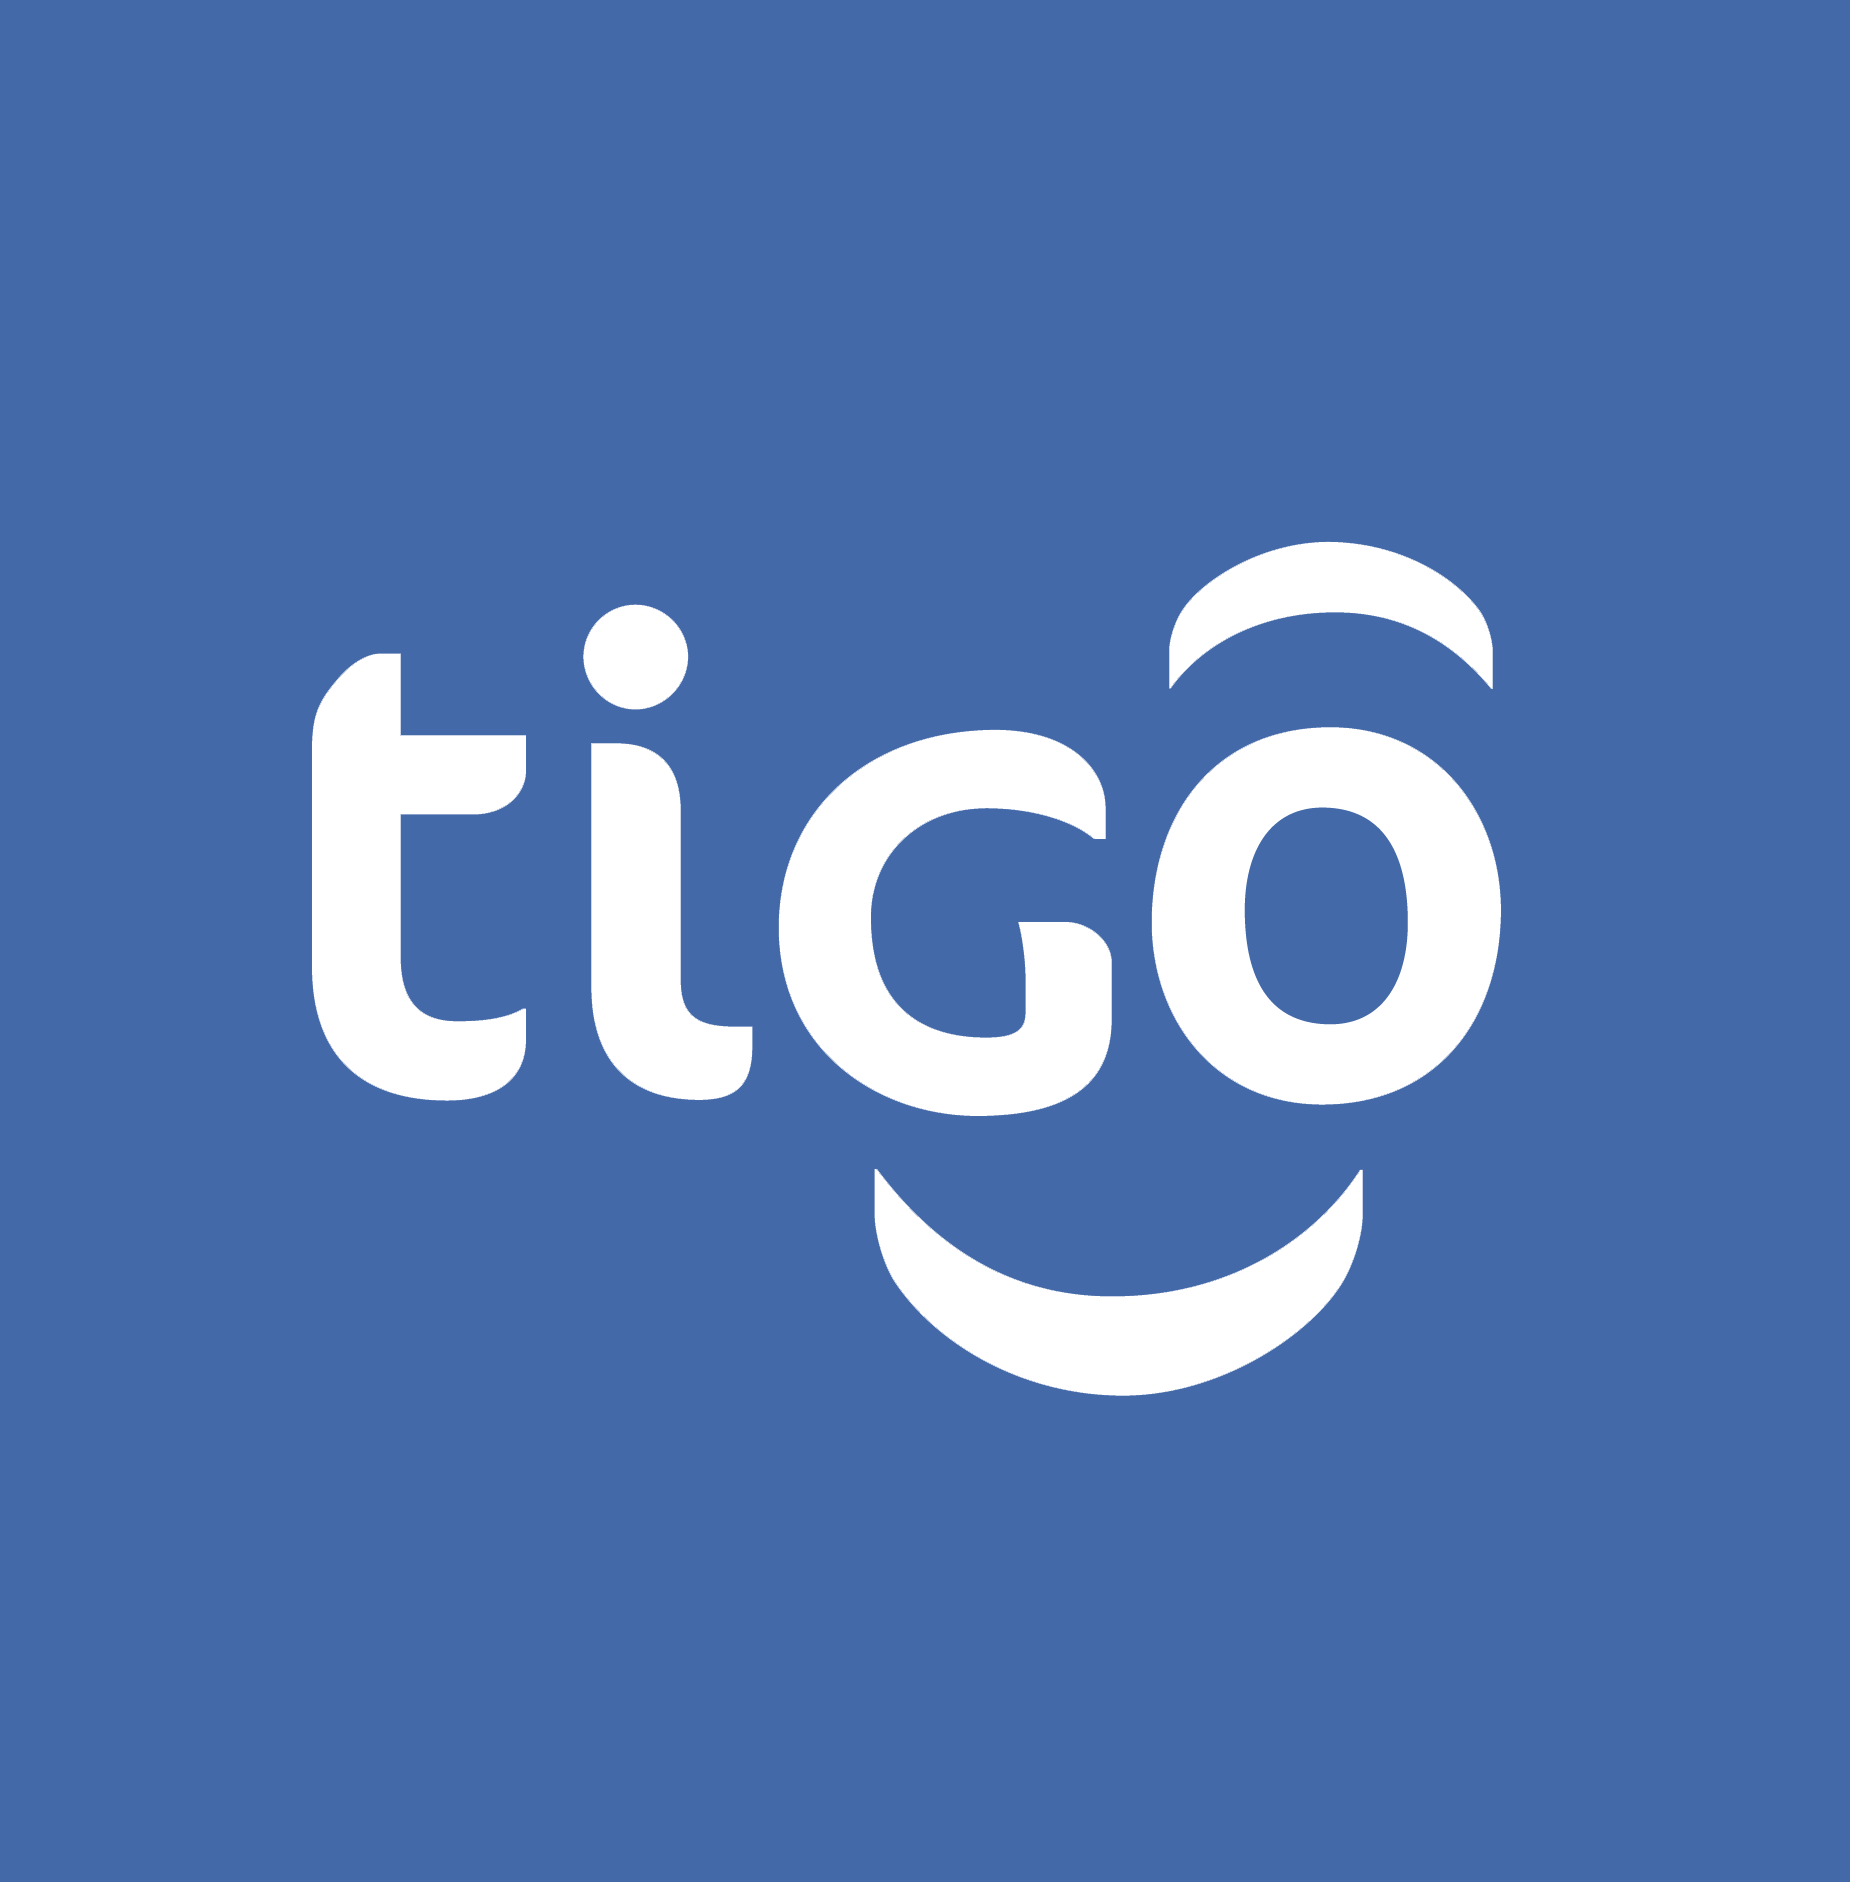 Unlock Tigo Colombia iPhone 11 (Pro/Max), XS, XR, X, 8, 7, 6S